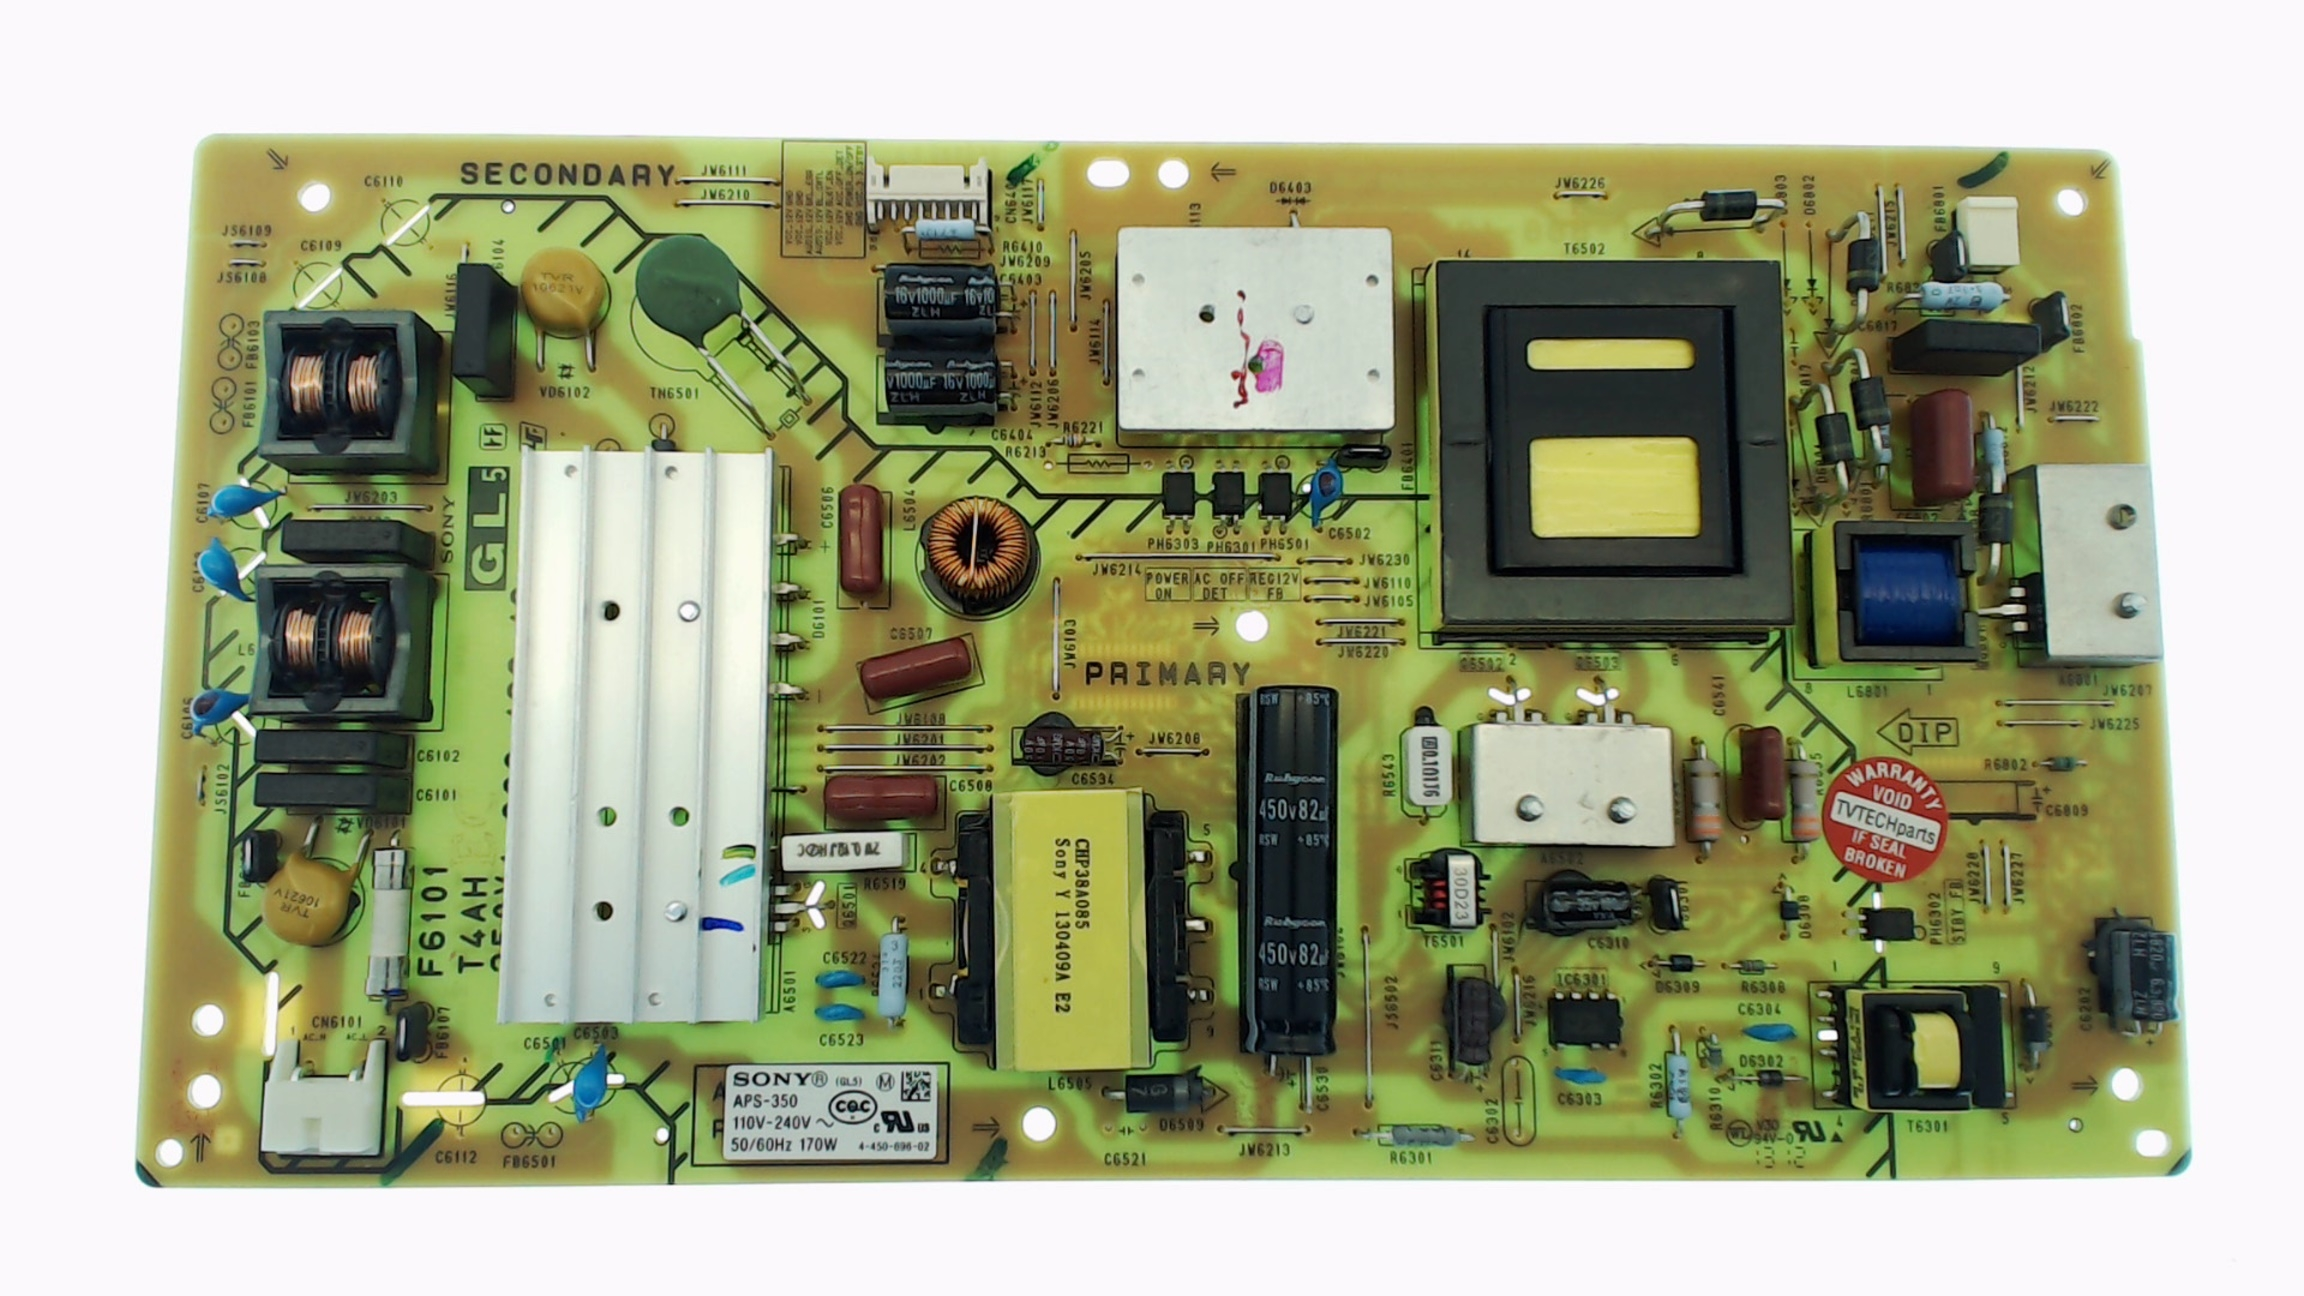 Sony TV Model KDL-46R453A Power Supply Board Part Number 1-474-488-11